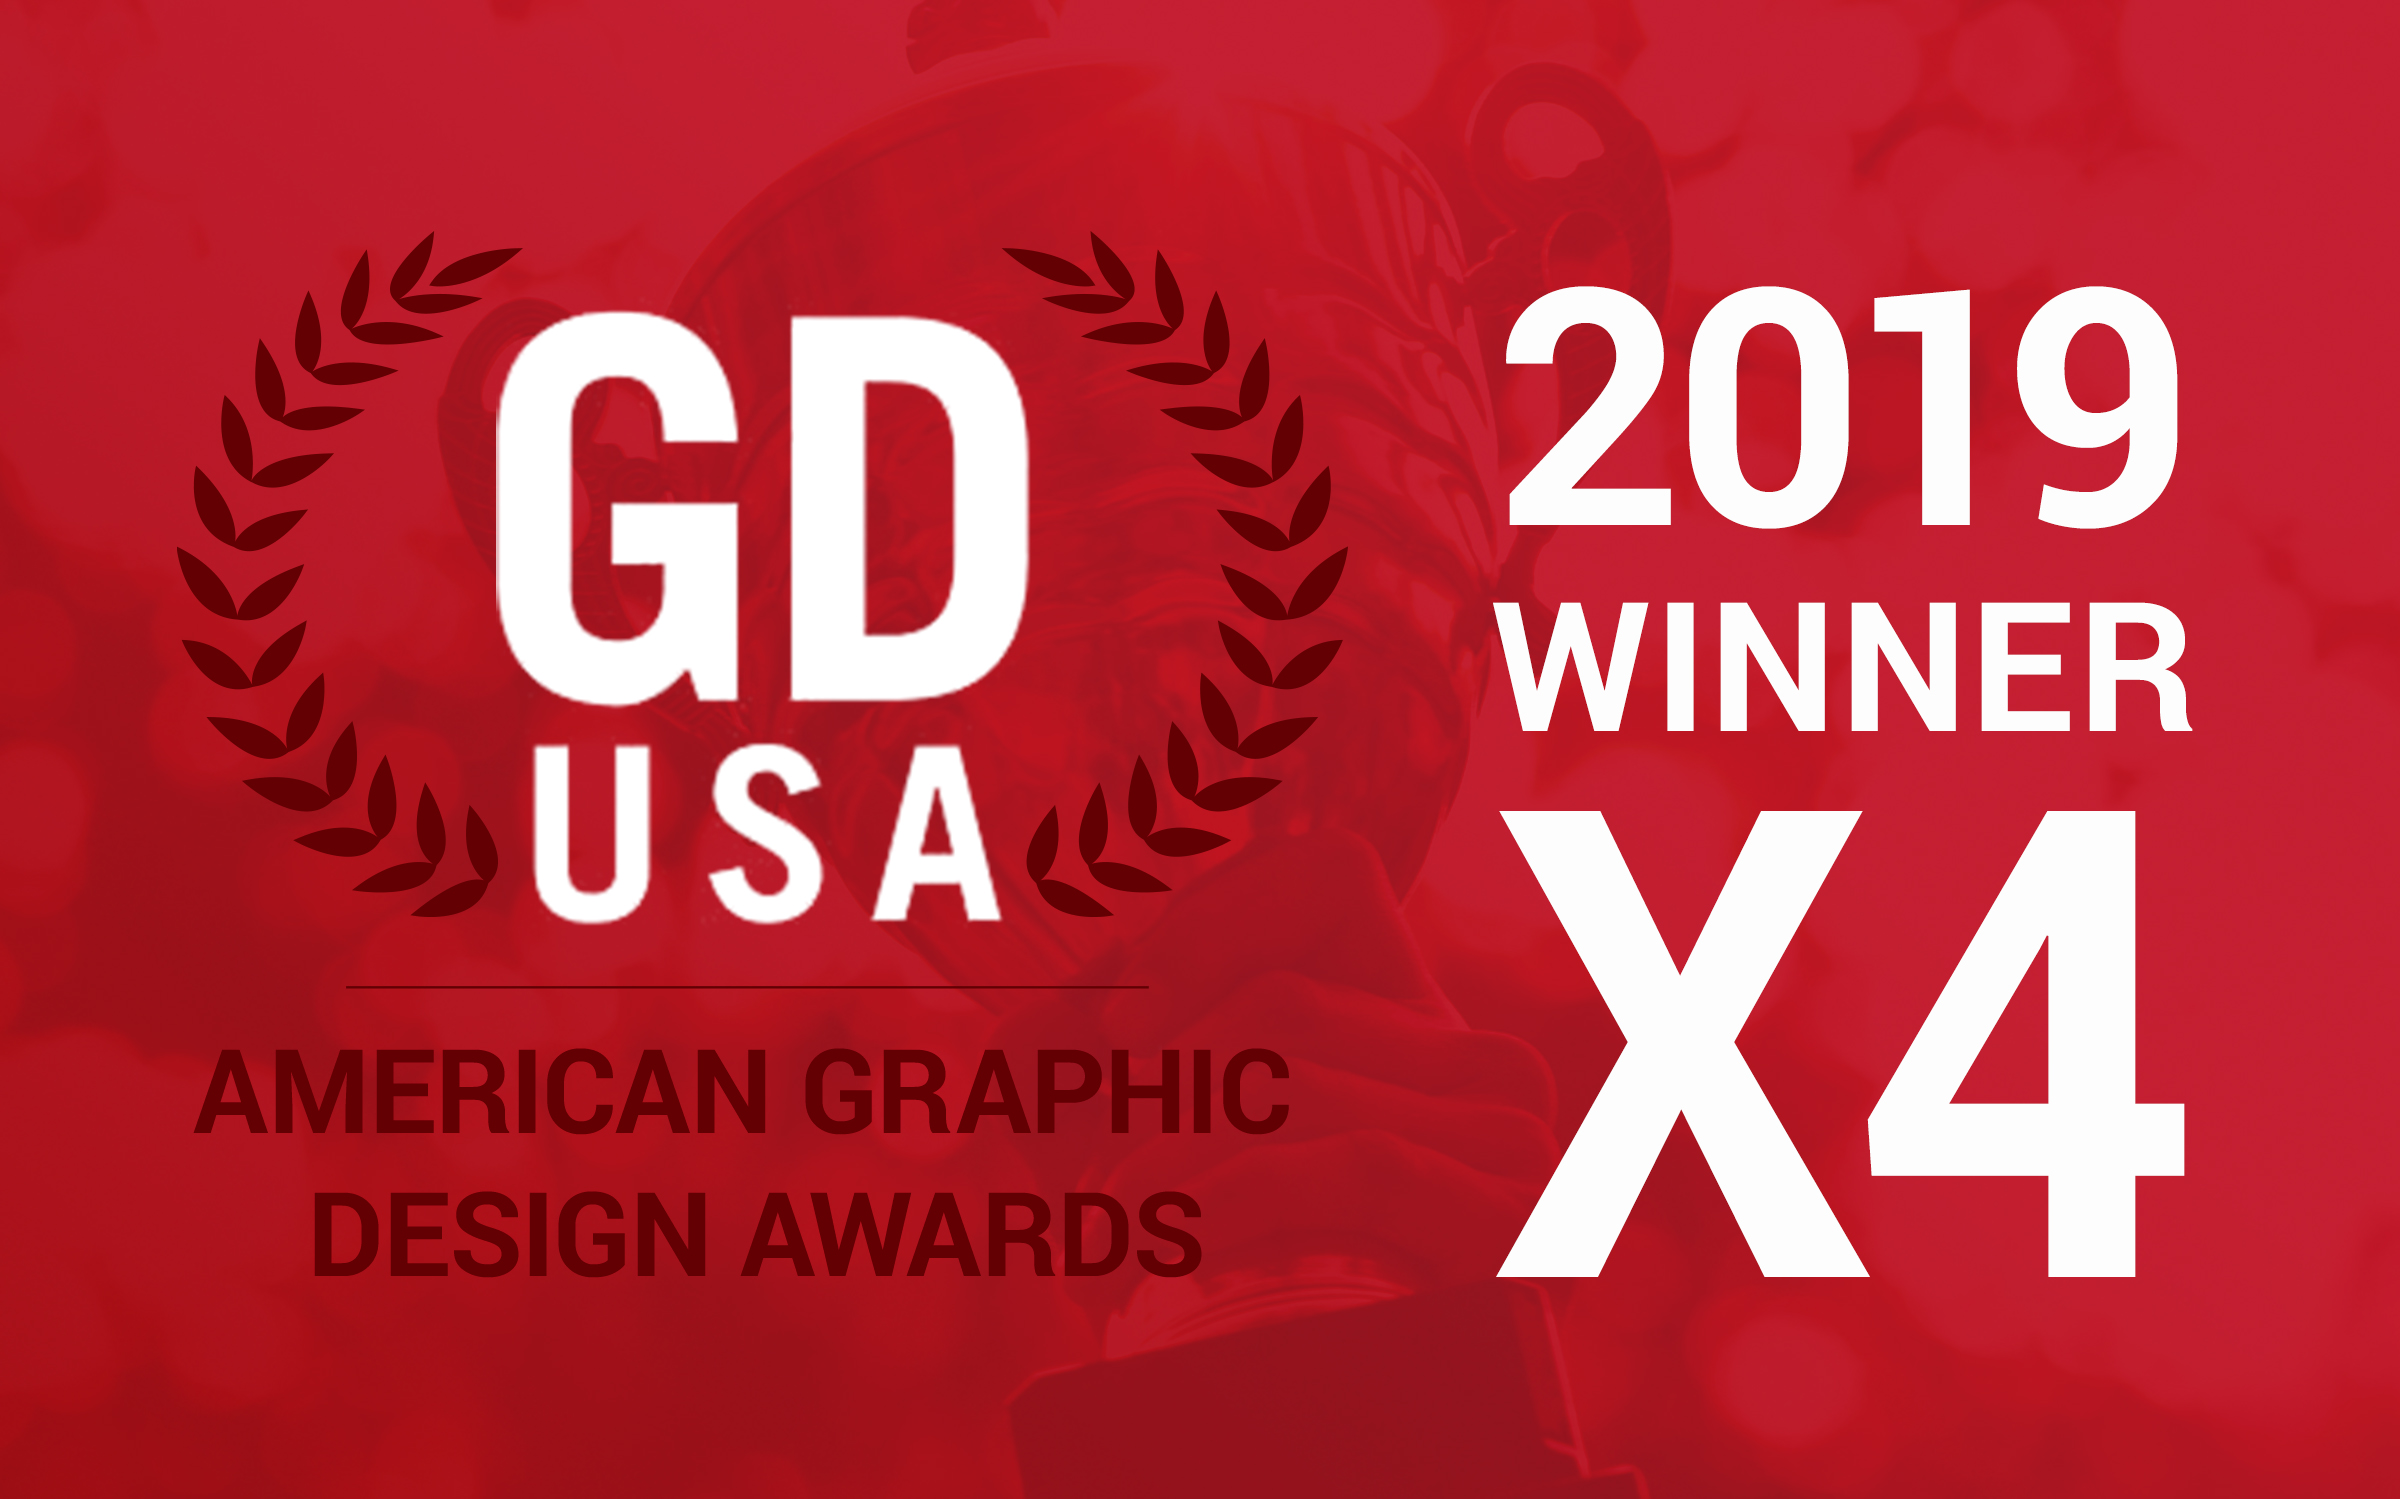 GD USA 4 Award Winners Image